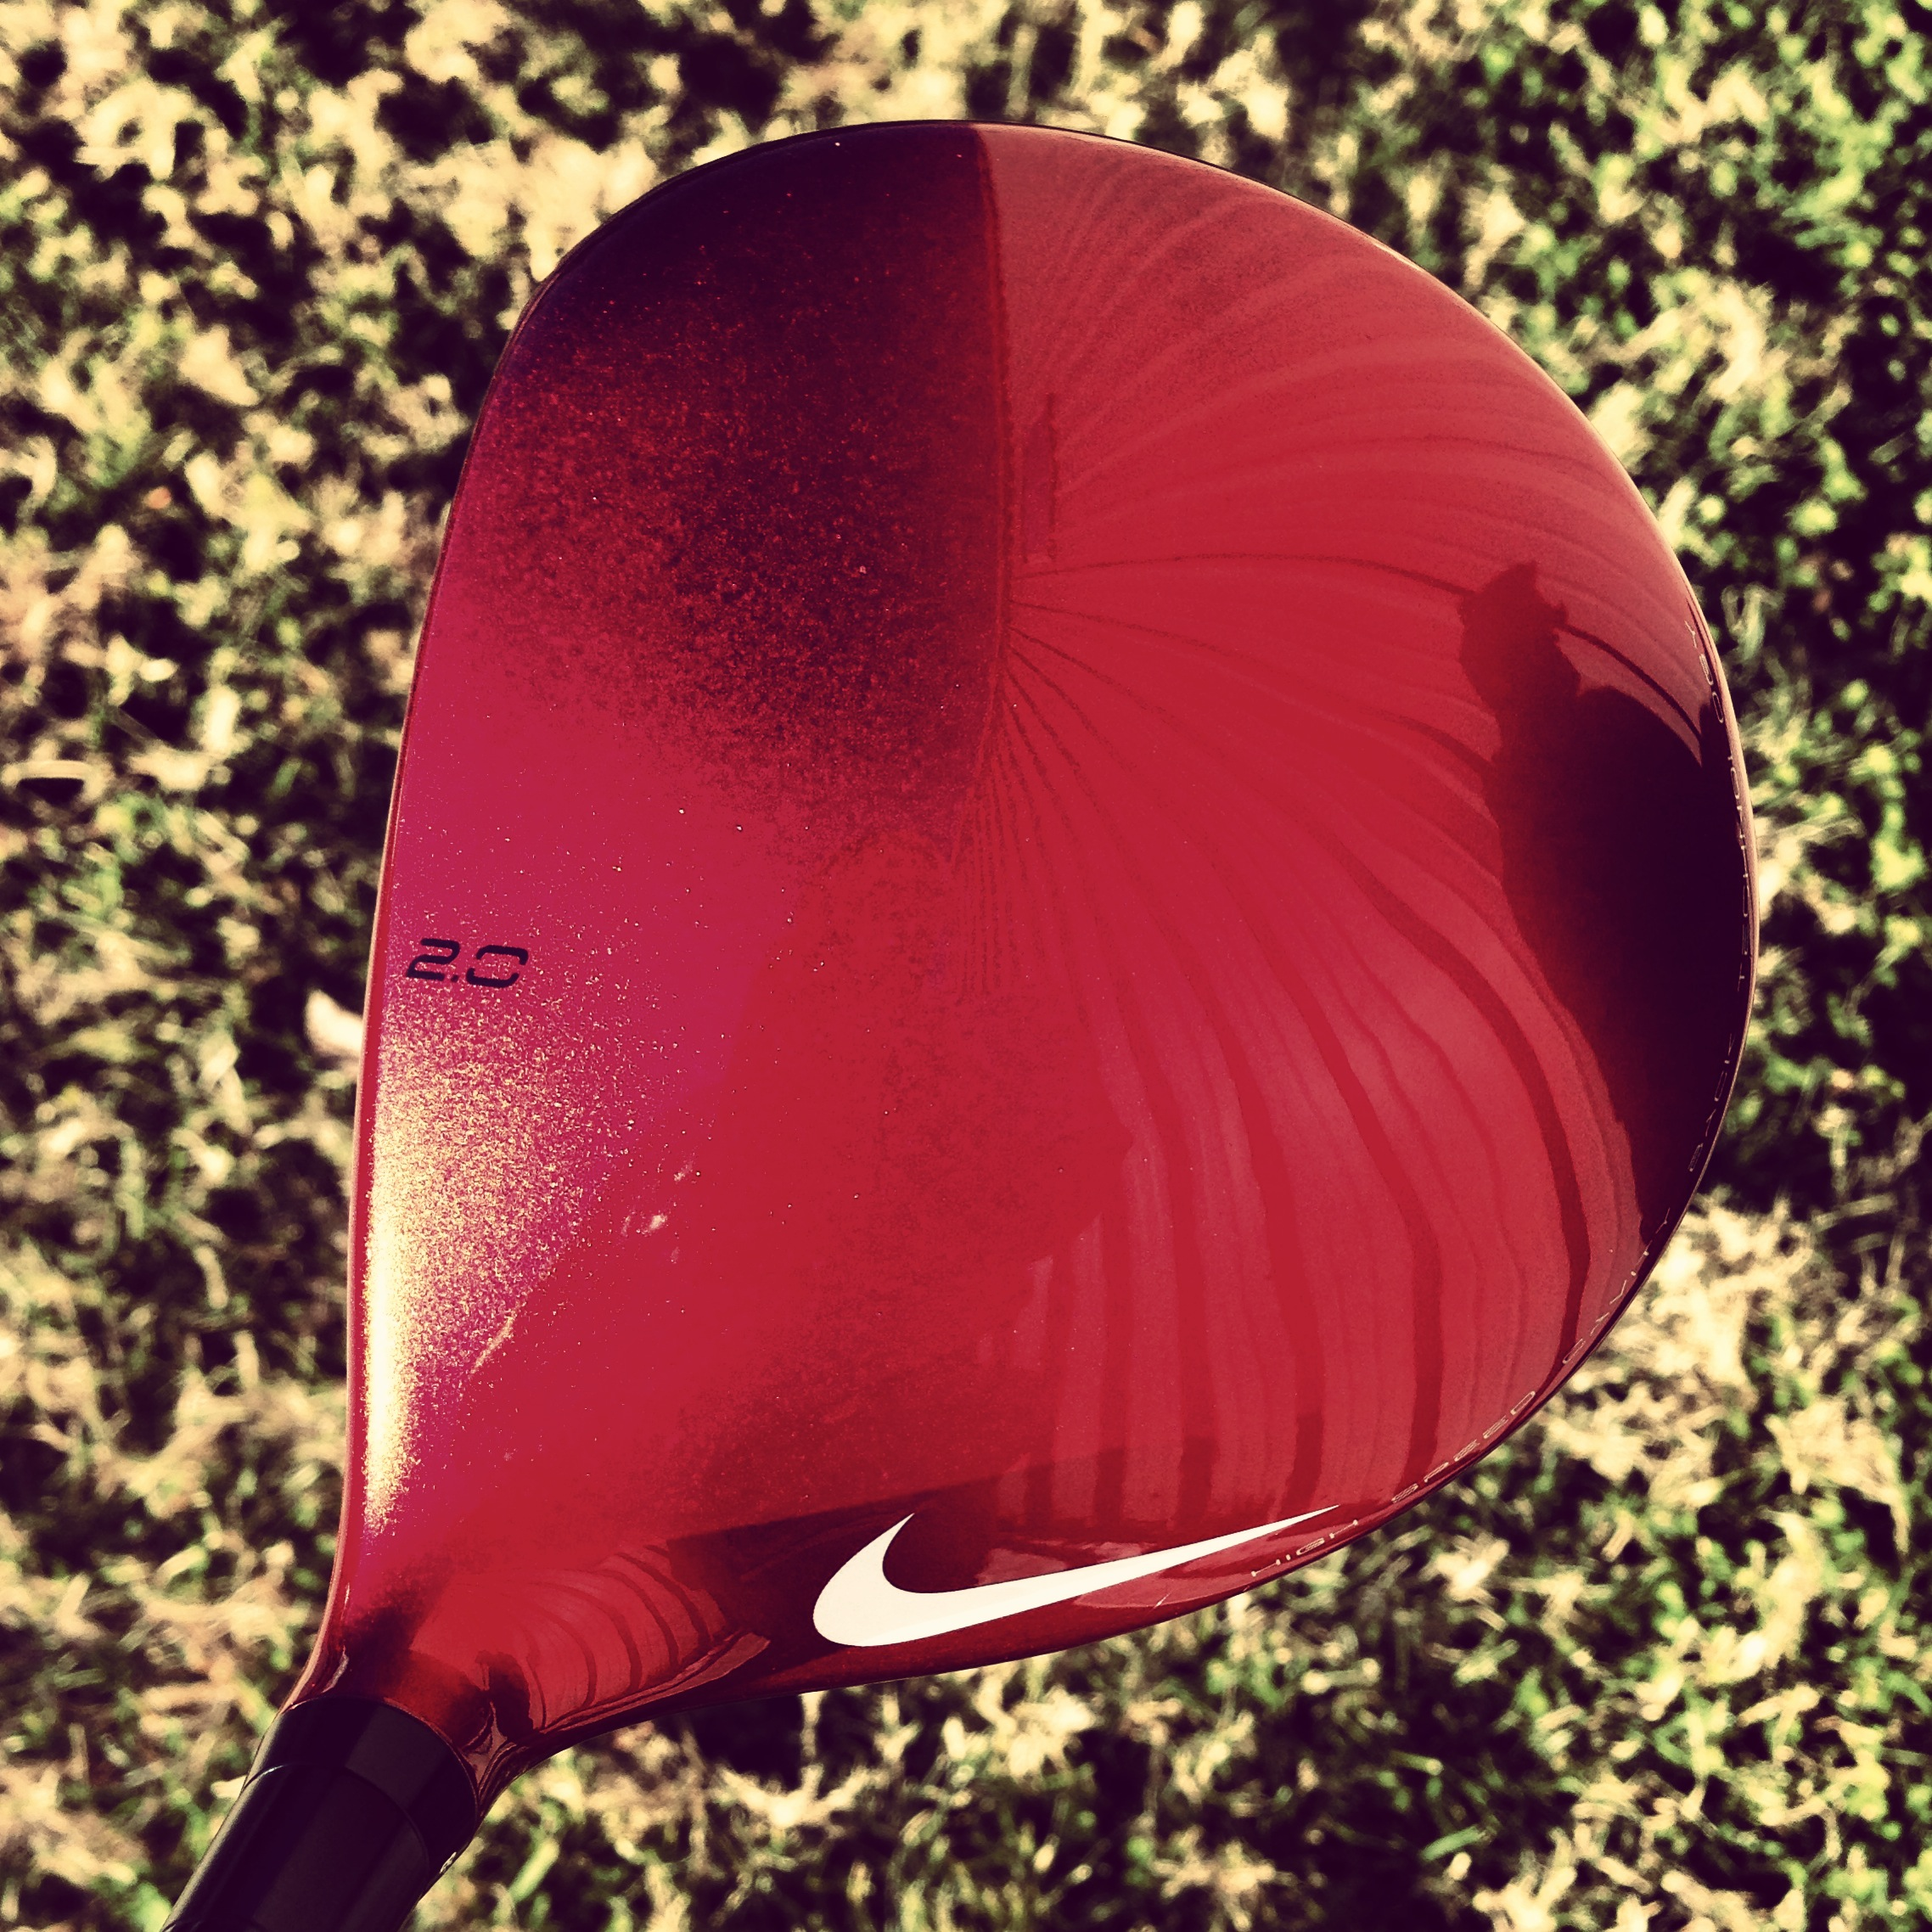 Covert 2.0 Driver Crown